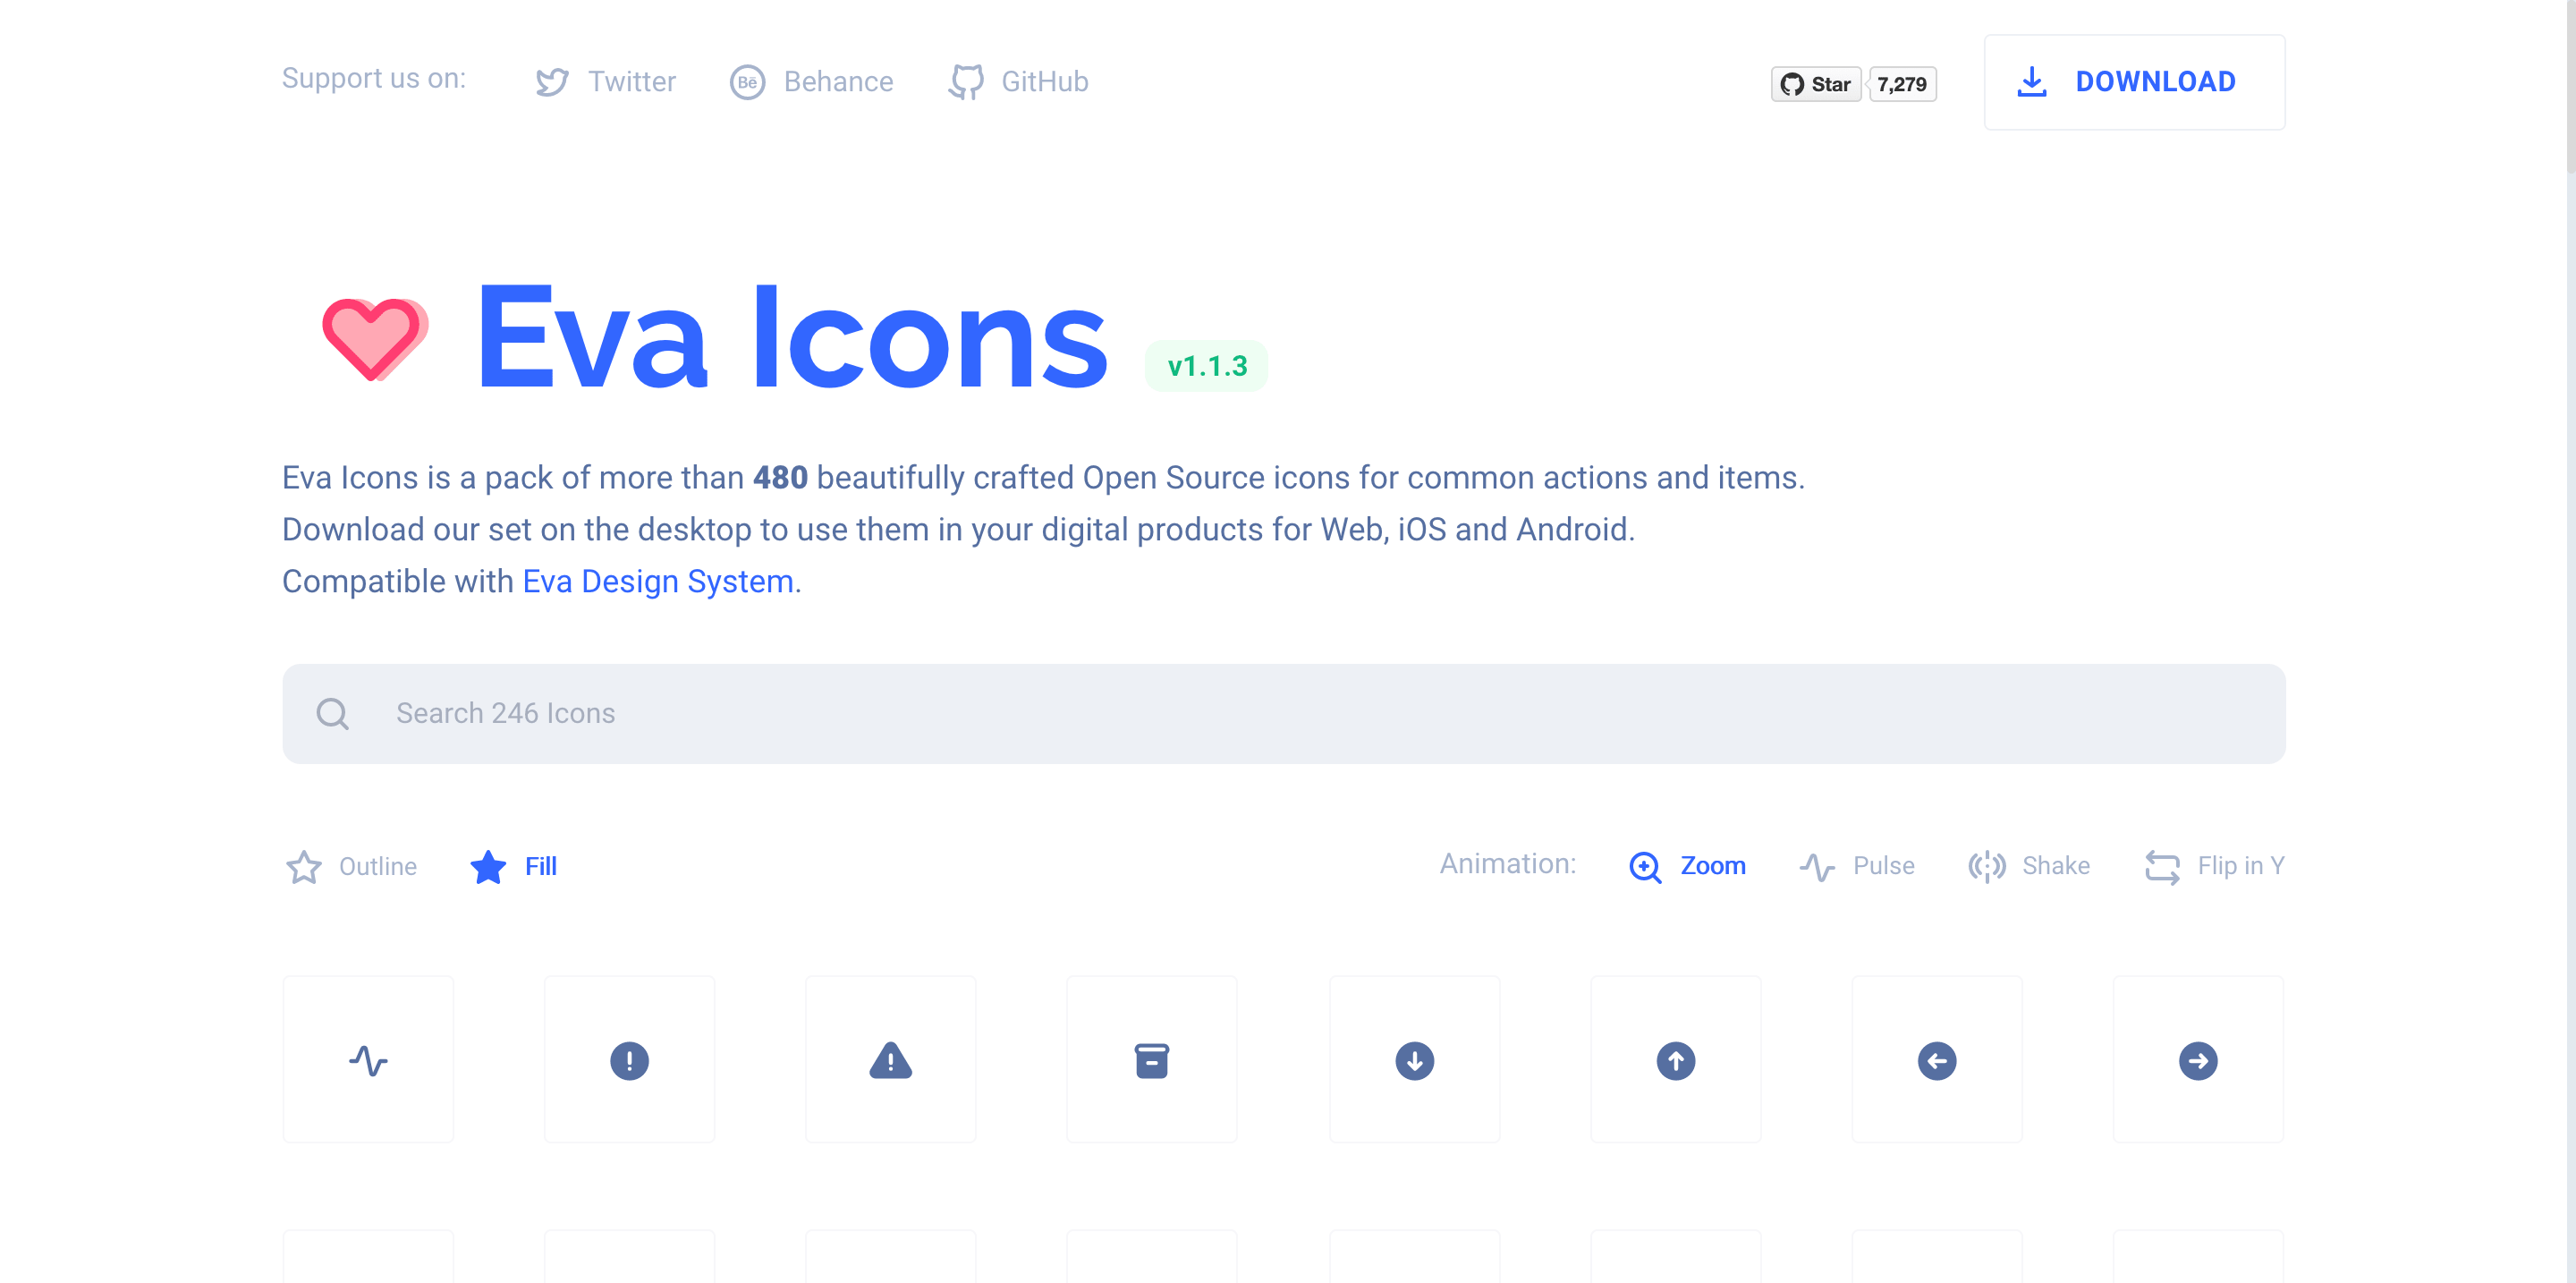 Eva Icons - beautifully crafted Open Source UI icons for common actions and items